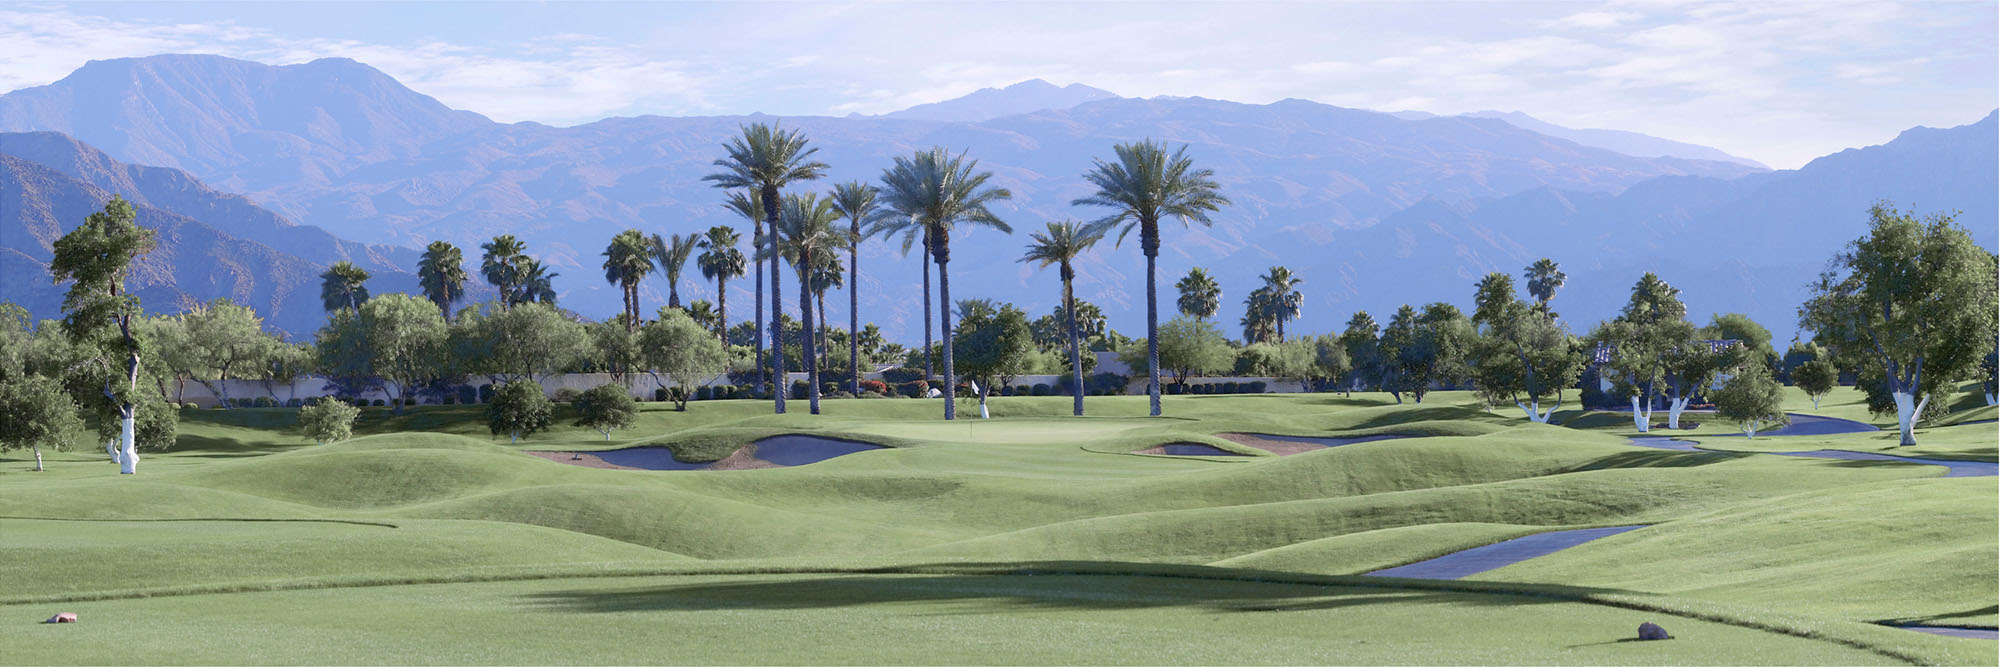 Golf Course Image - Rancho La Quinta Jones No. 12